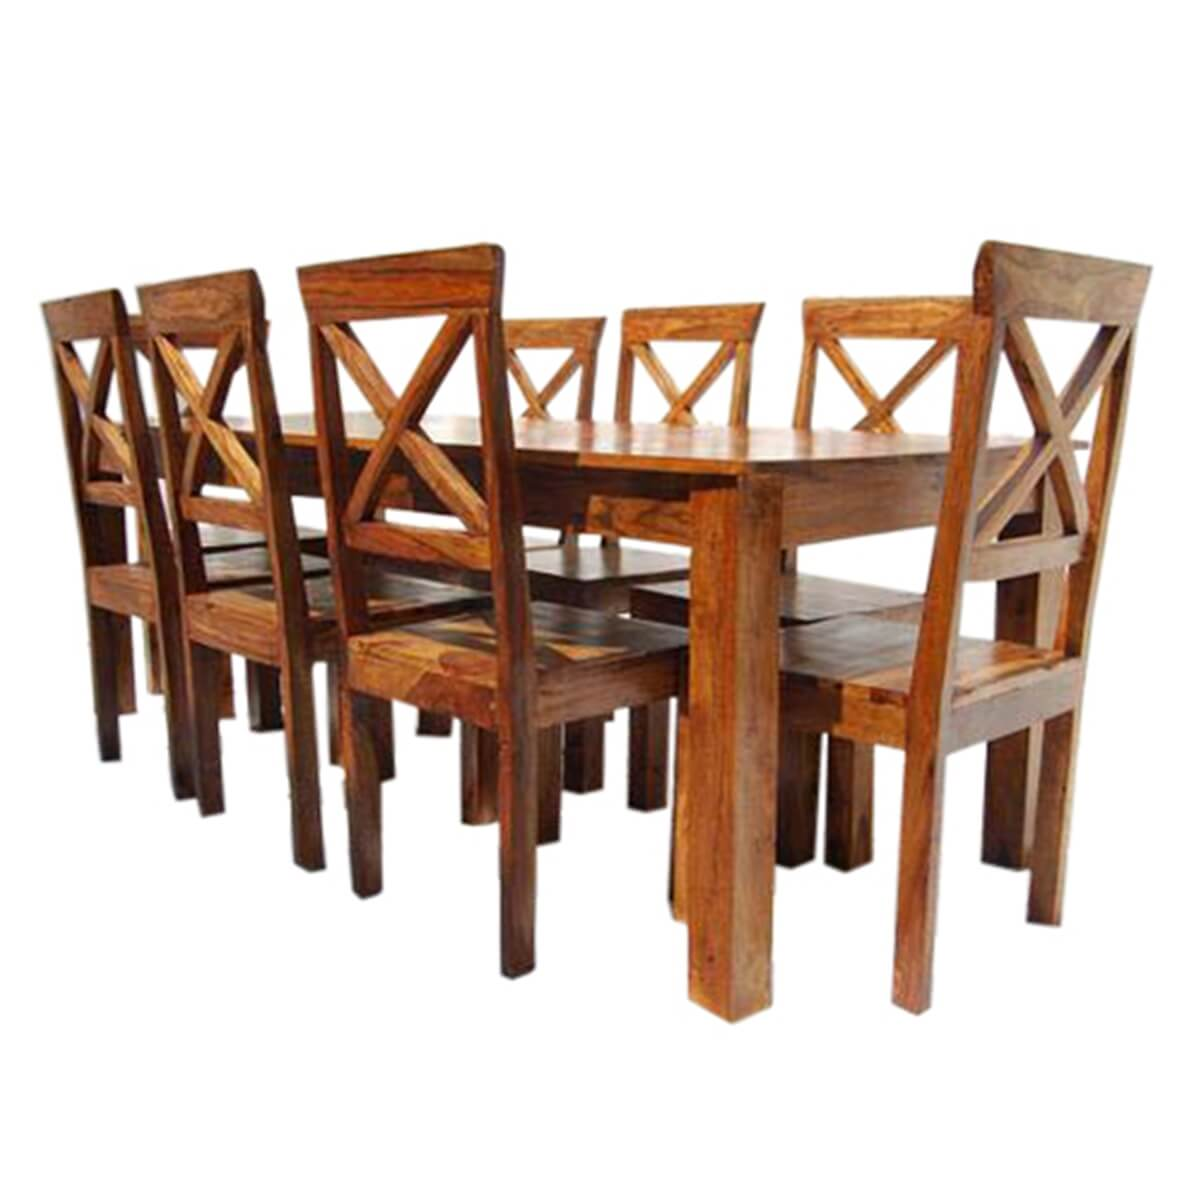 Large Rustic Oklahoma Solid Wood Dining Table amp Chair Set : 13531 from www.sierralivingconcepts.com size 1200 x 1200 jpeg 333kB